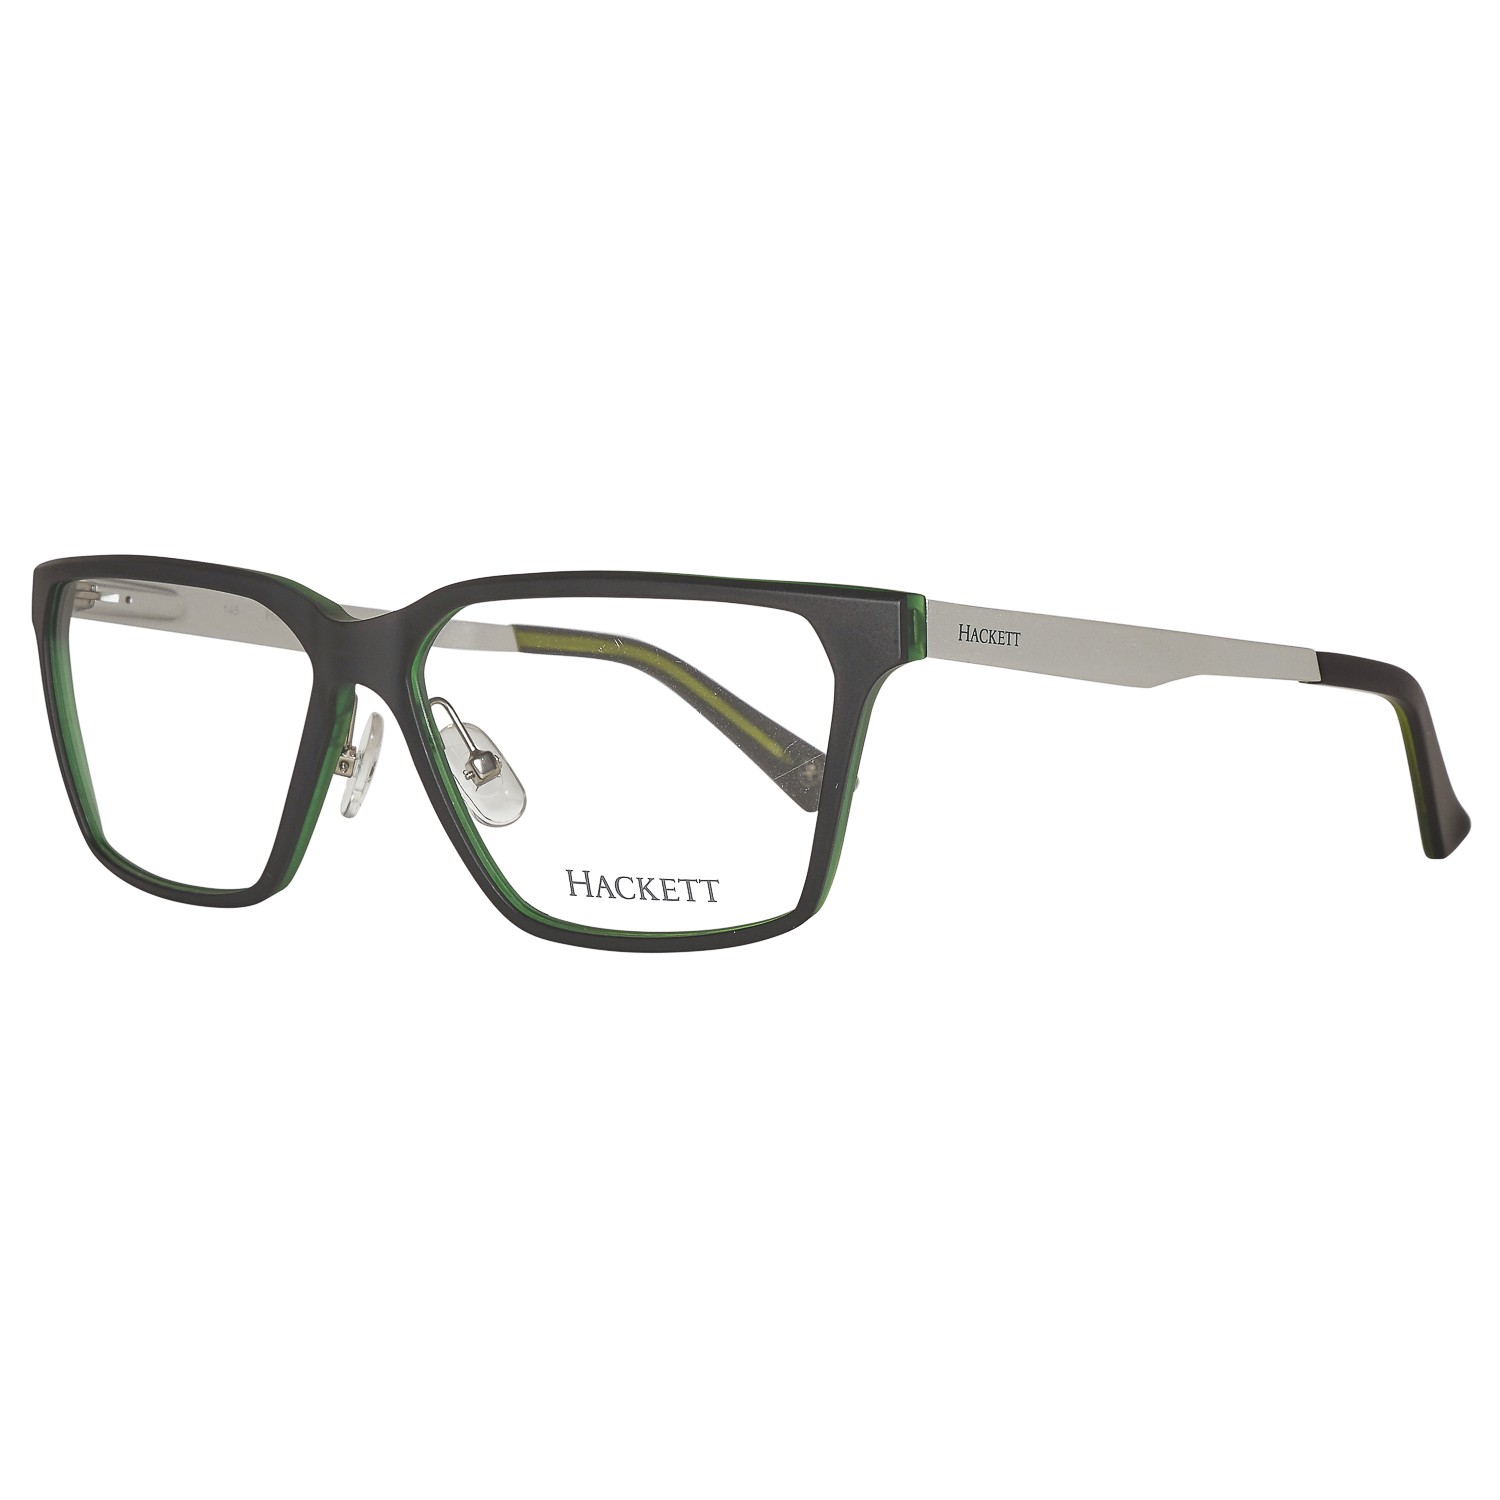 Hackett Optical Frame HEK1156 074 Black